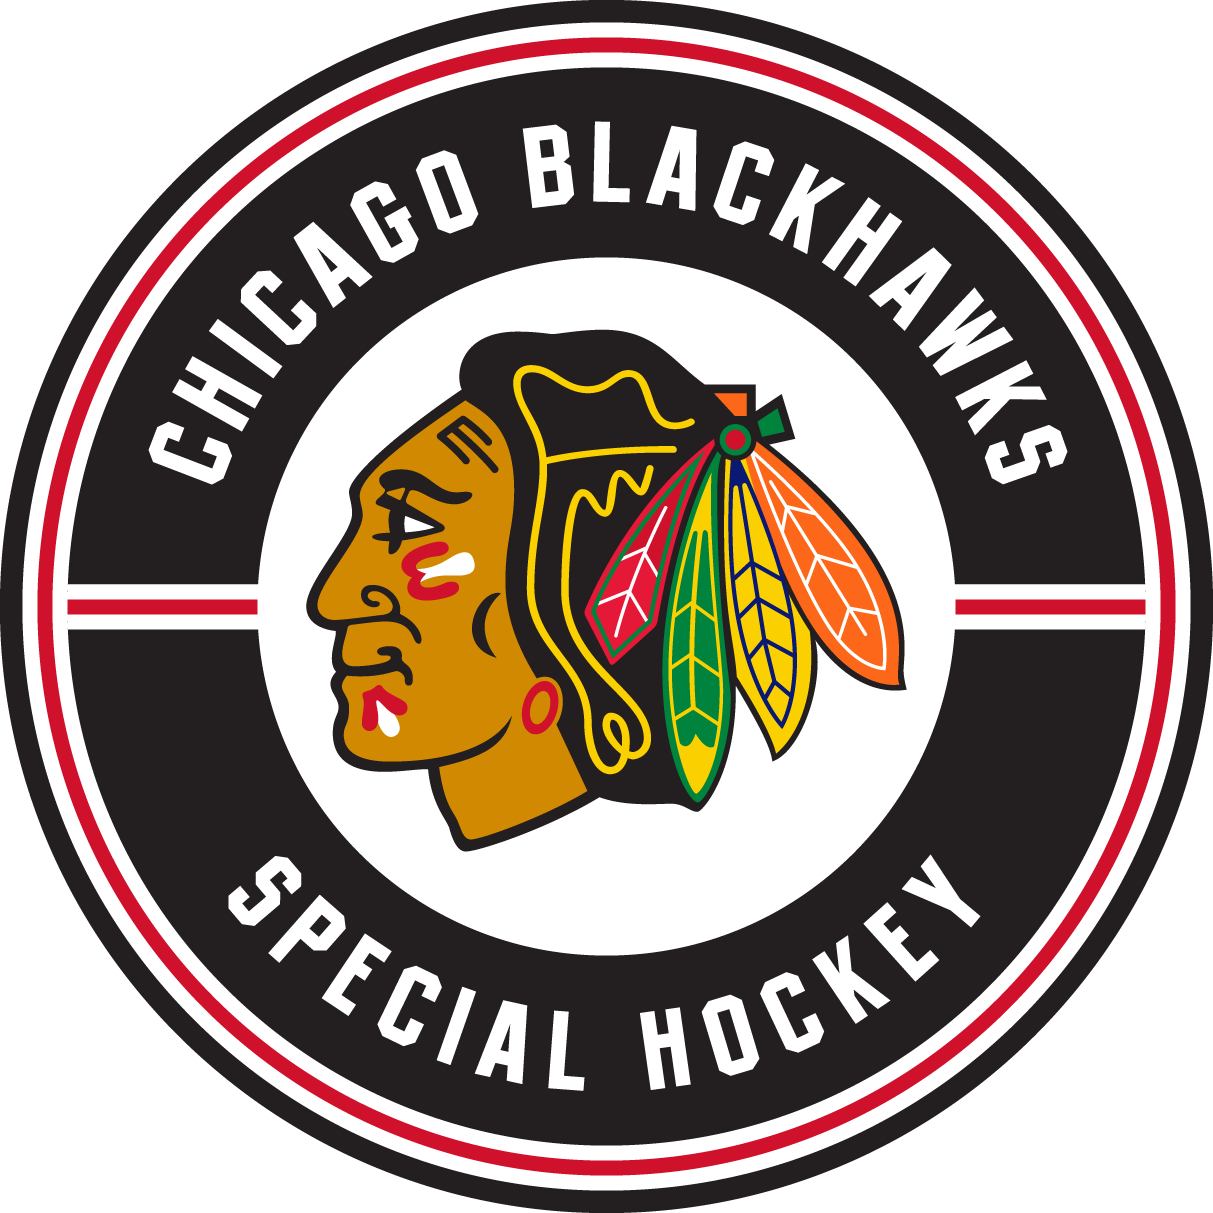 Chicago Blackhawks Special Hockey